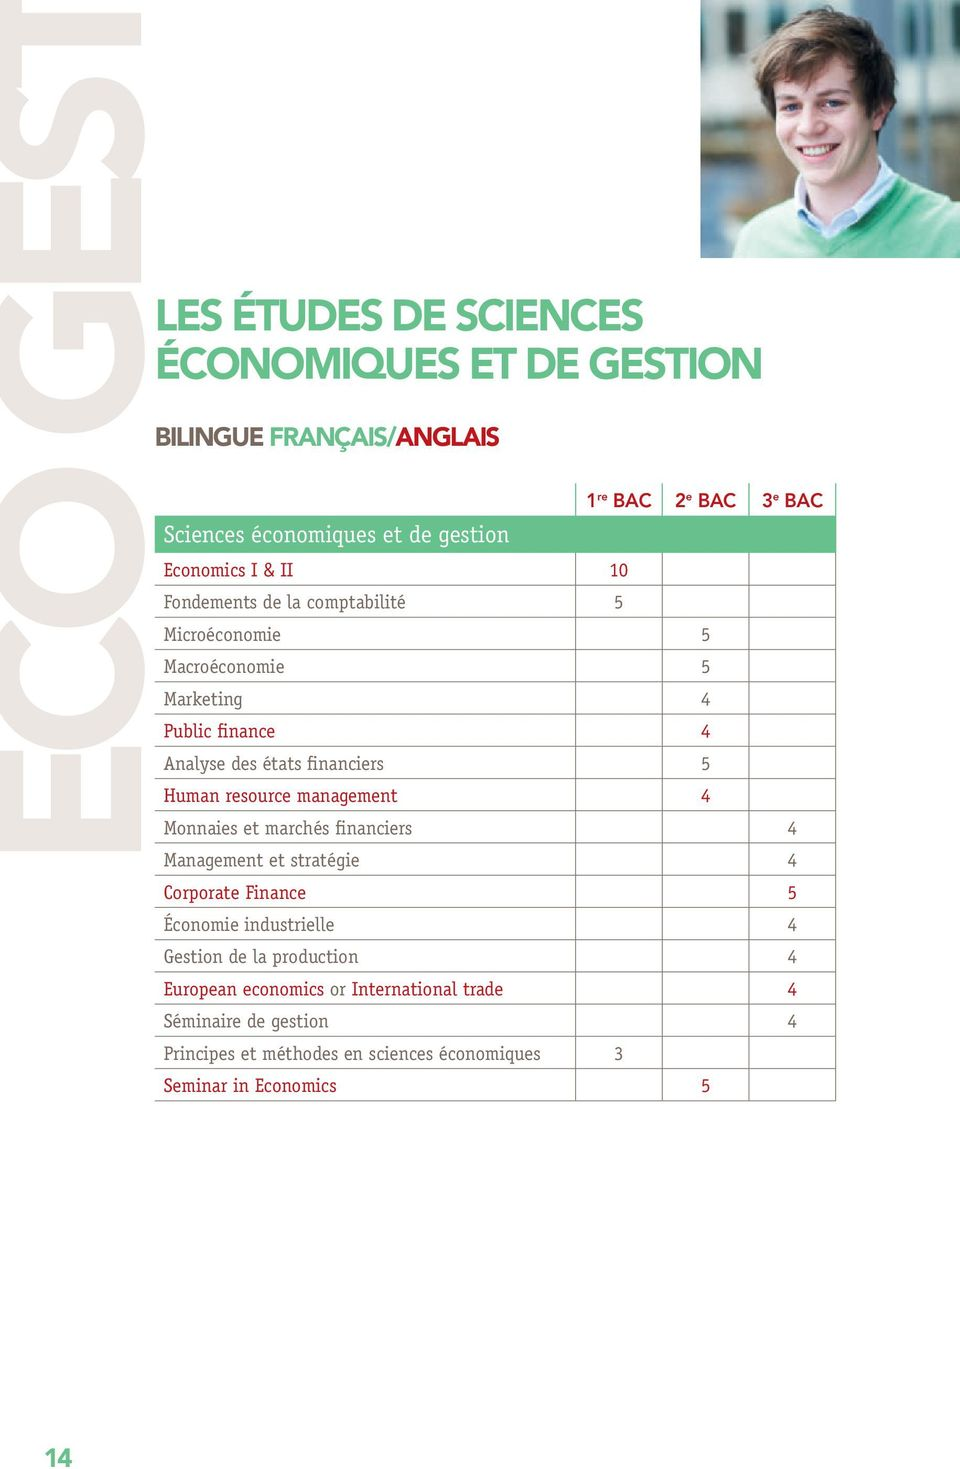 management 4 Monnaies et marchés financiers 4 Management et stratégie 4 Corporate Finance 5 Économie industrielle 4 Gestion de la production